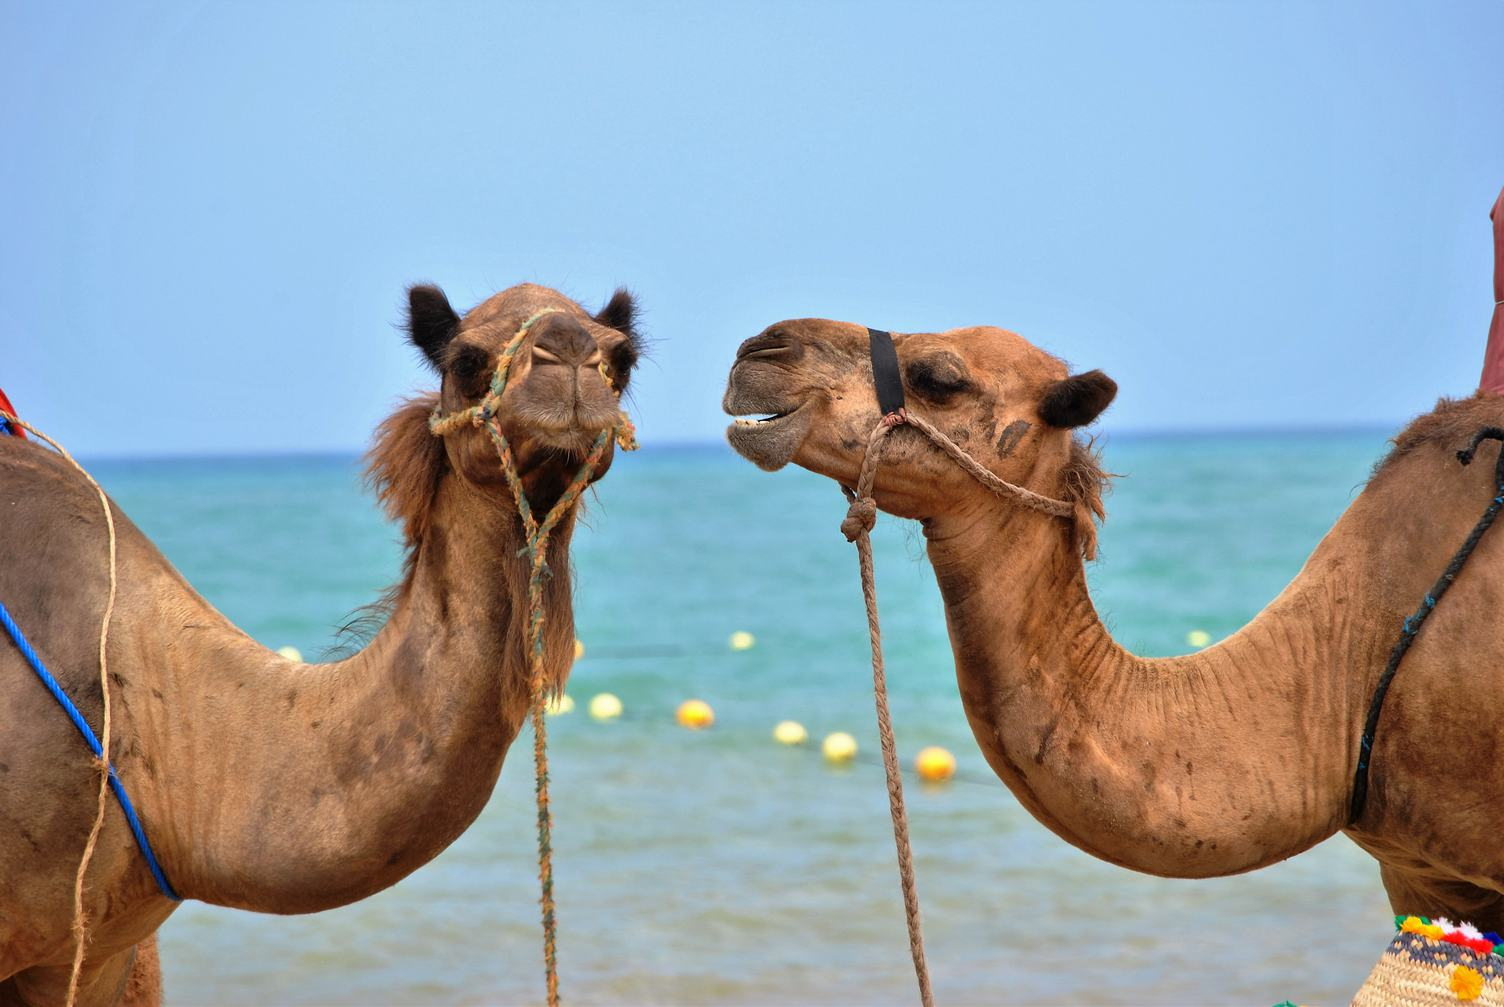 Two Camels on the Beach